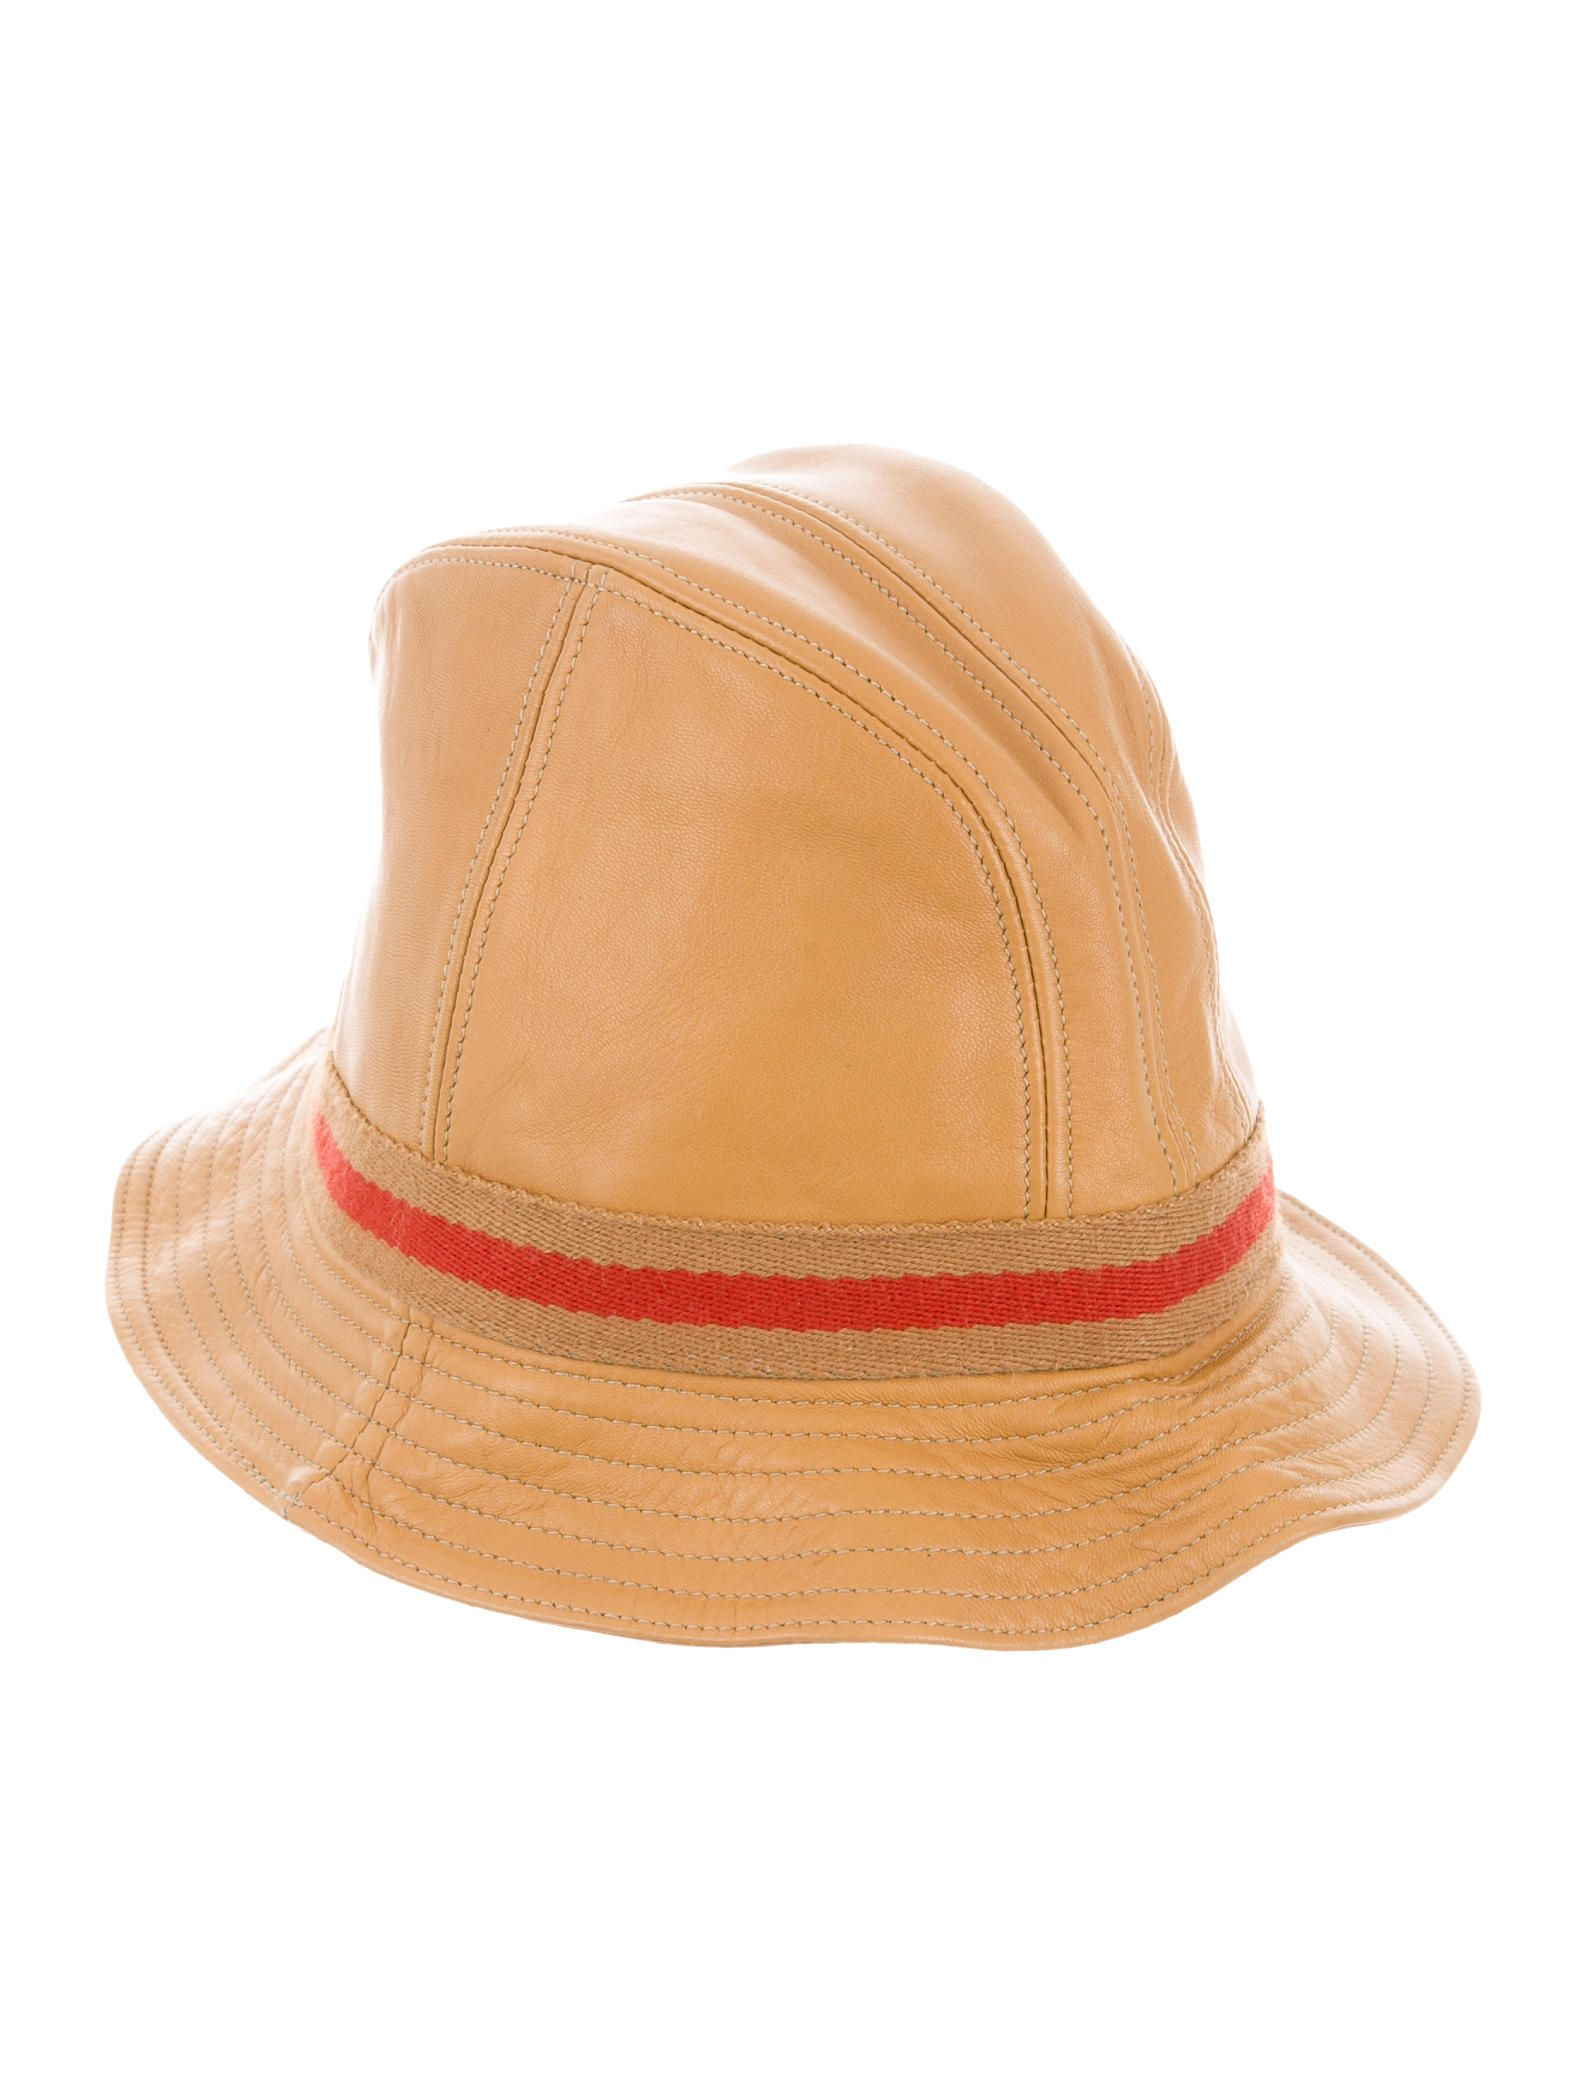 42e98c9f5ec Tan leather Gucci bucket hat with brown and red canvas trim featuring  gold-tone logo embellishment. Designer size M.